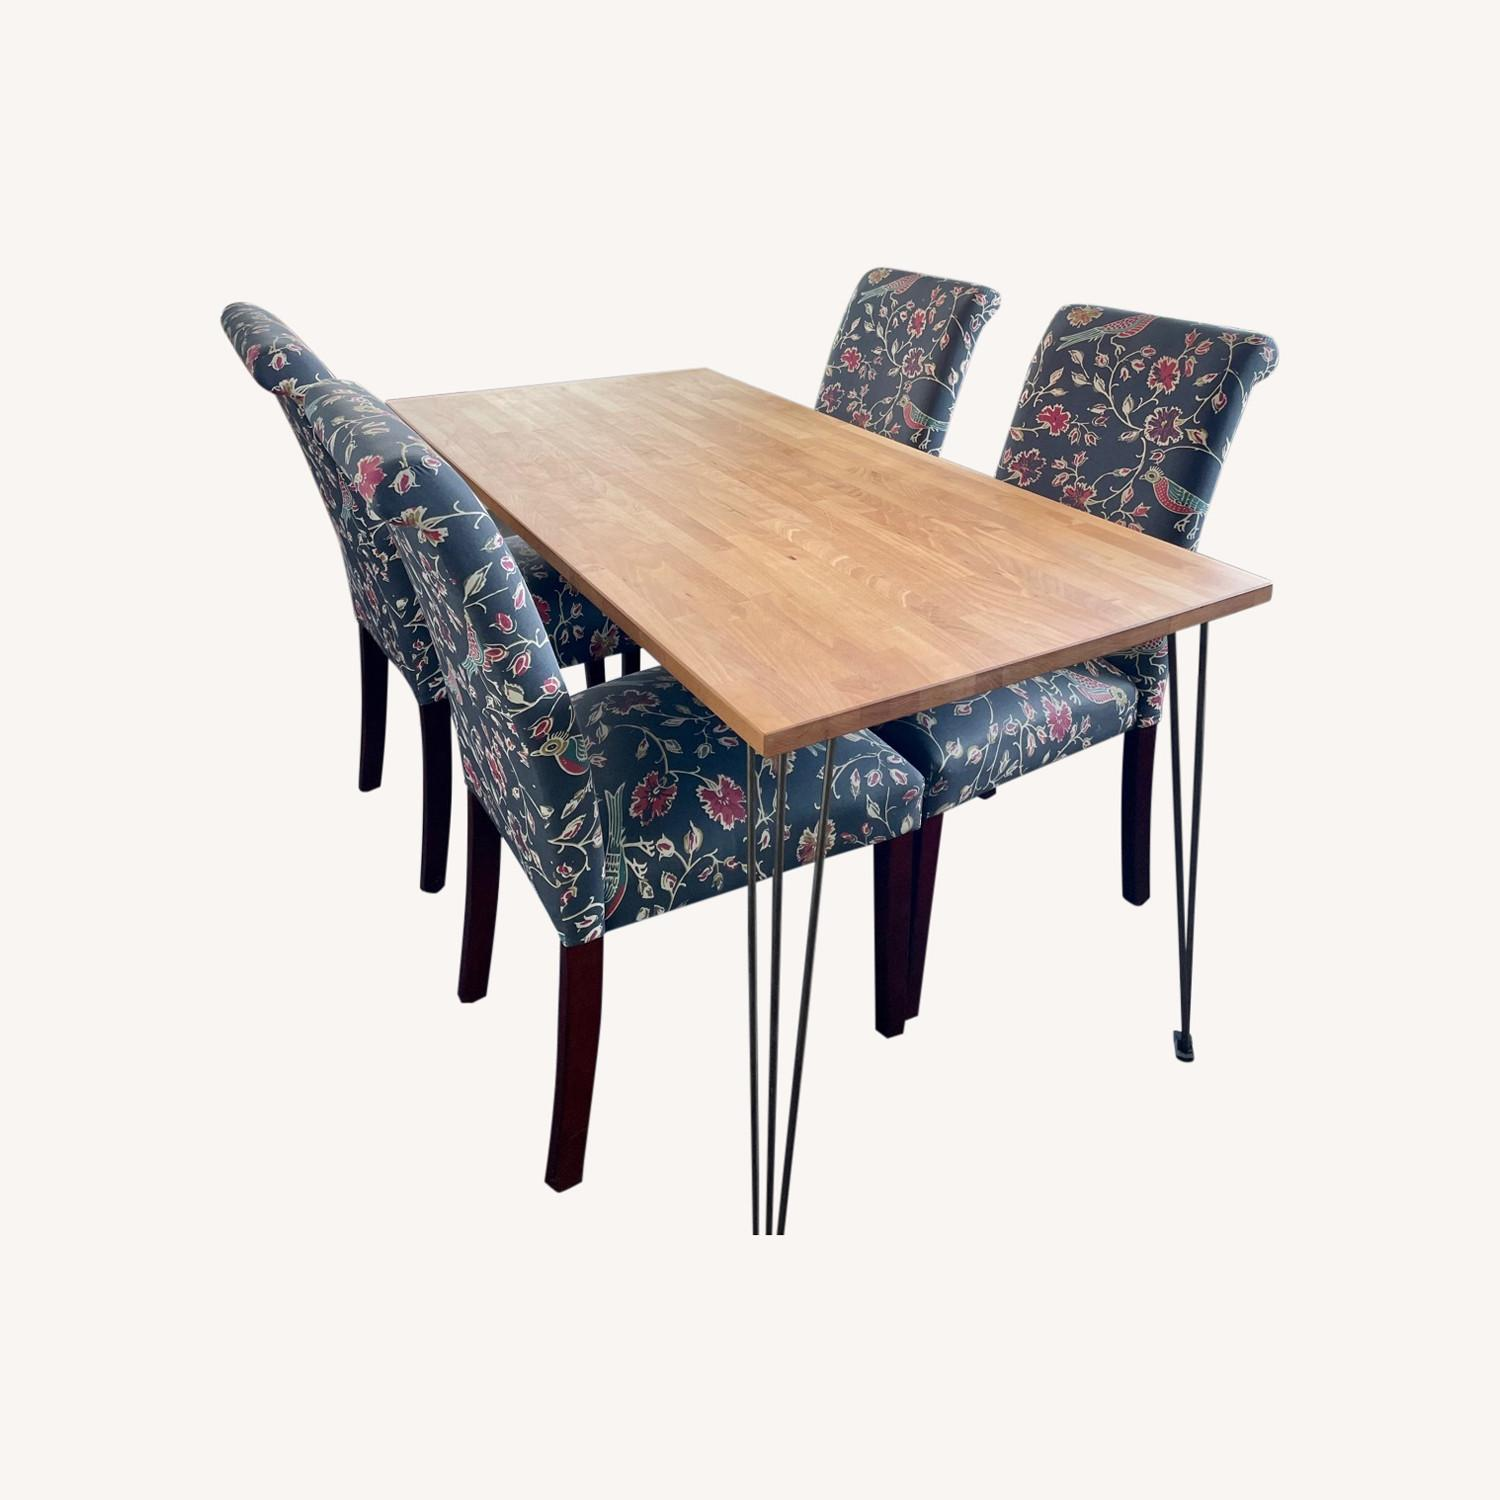 Target Wood Top Dining Table and 4 Matching Chairs - image-0